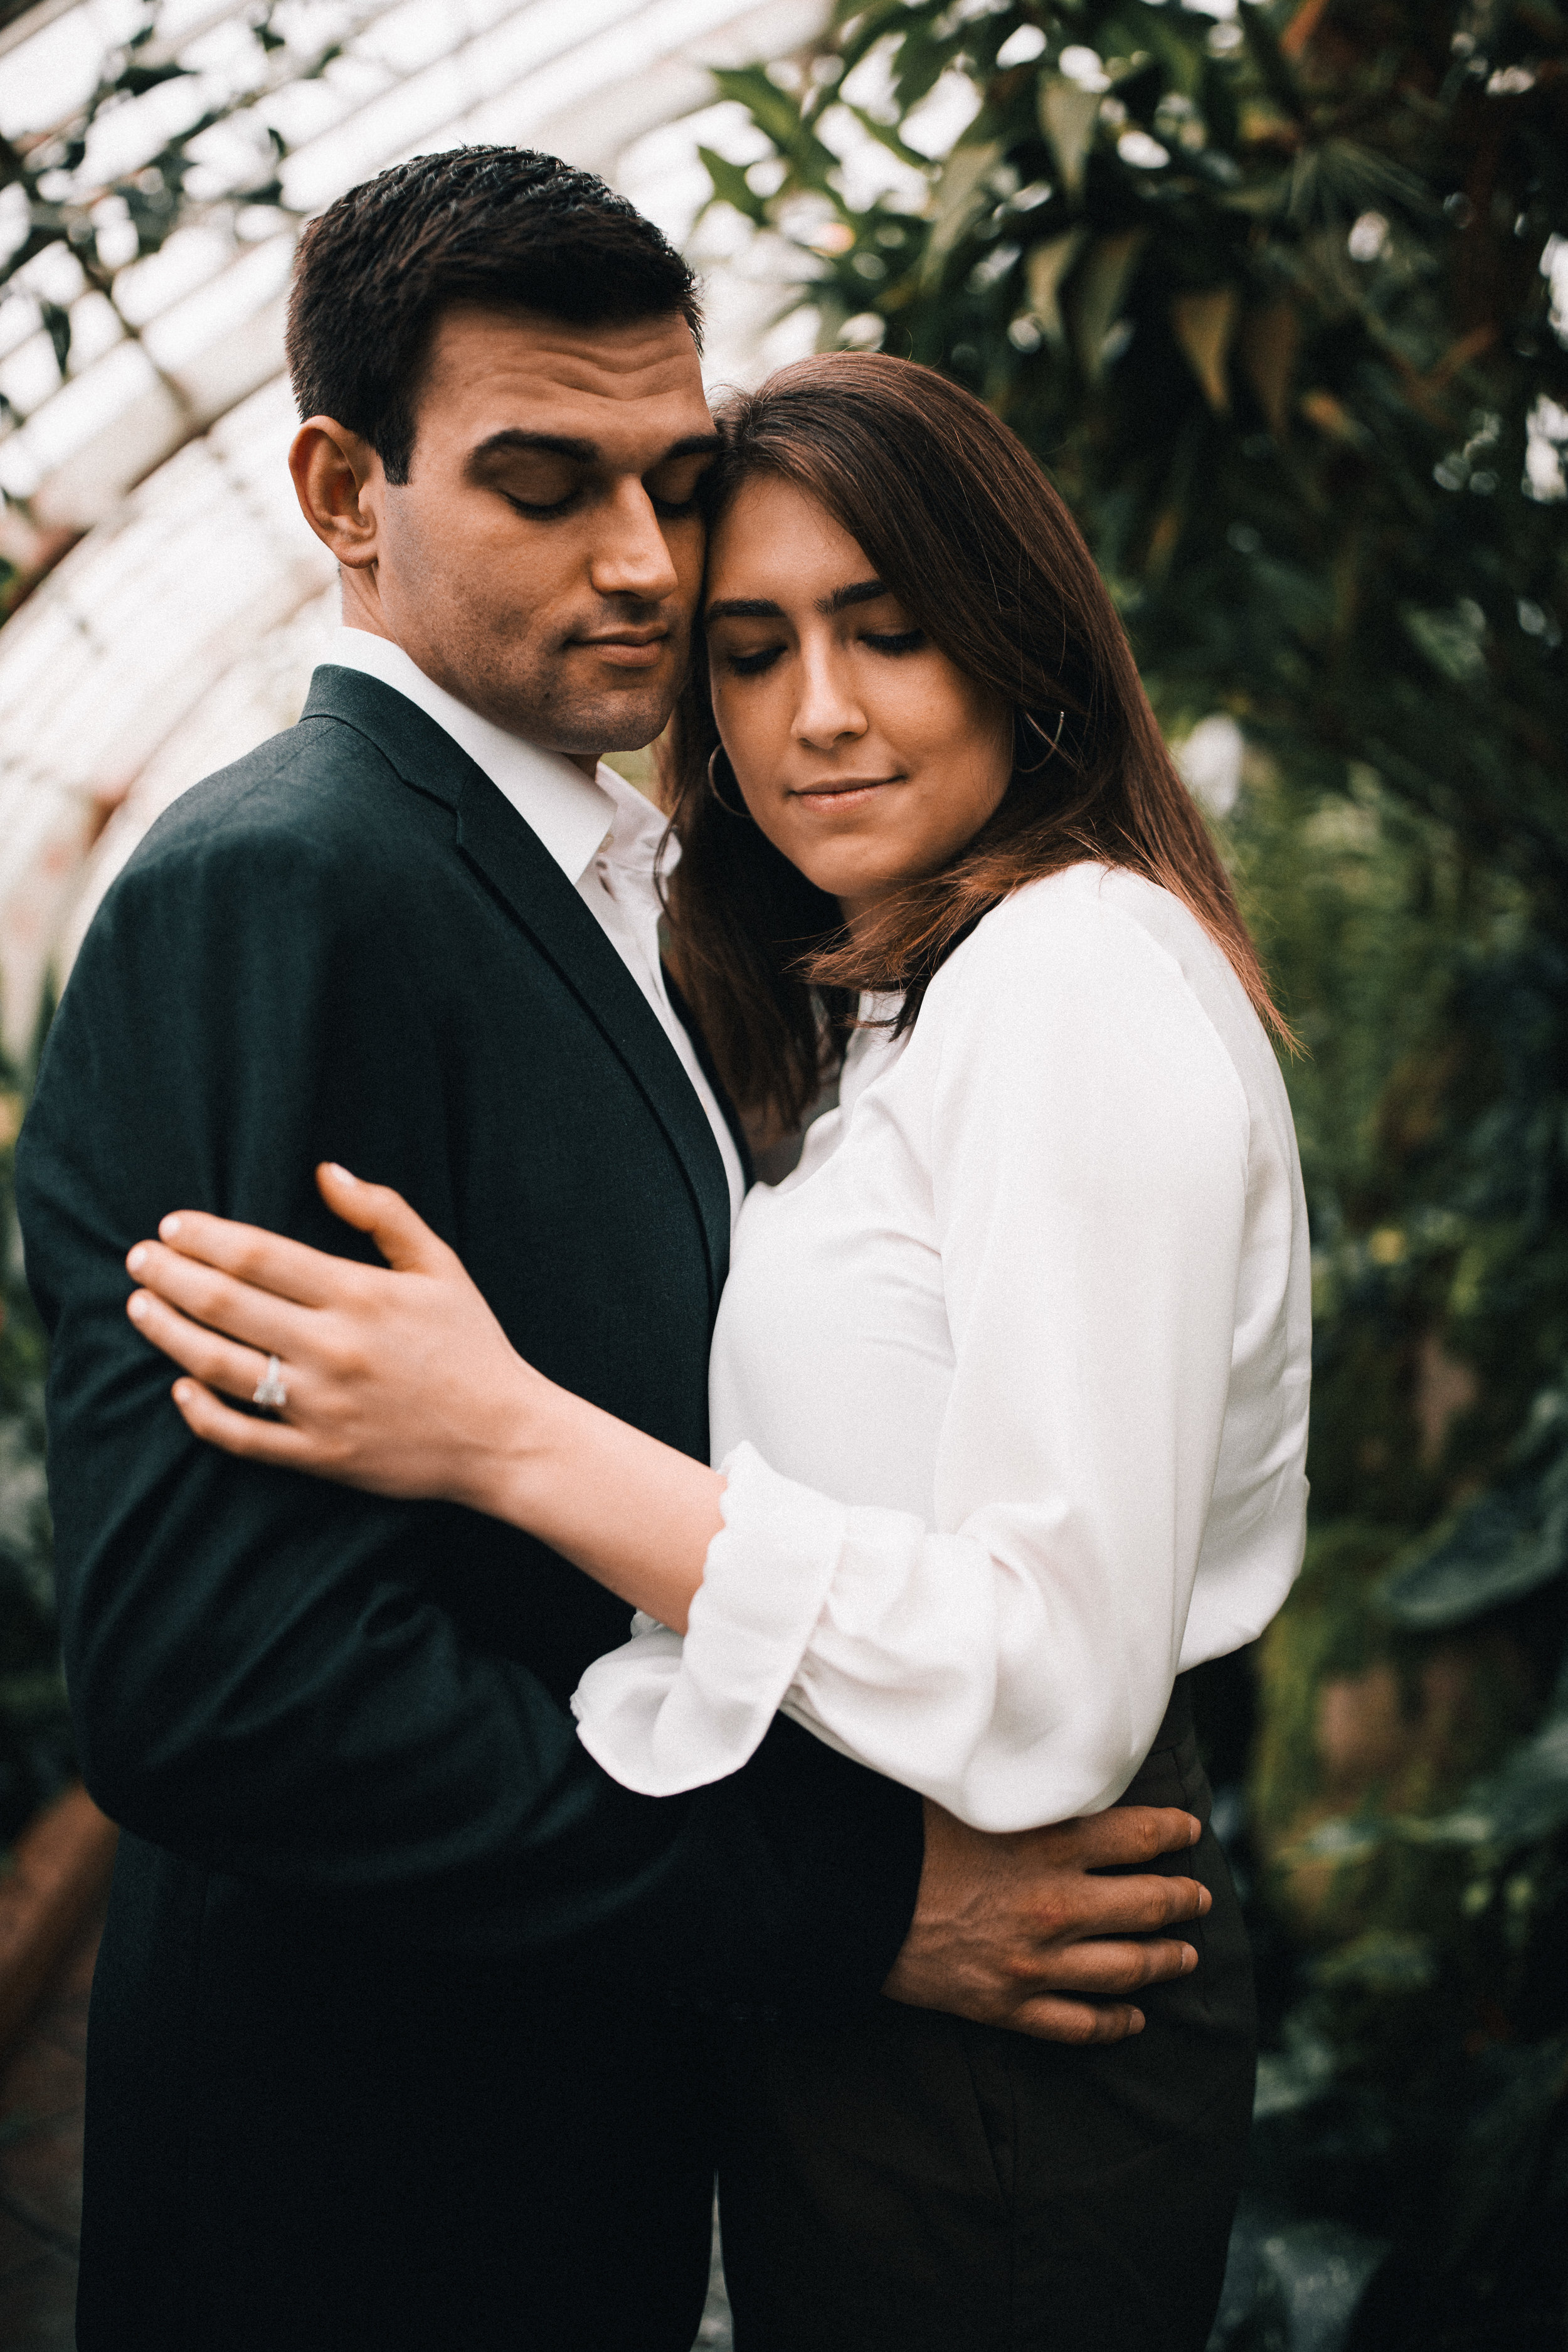 2019_04_ 072019.04.08 Ana and Richard Engagement Session Edited For Web 0010.jpg